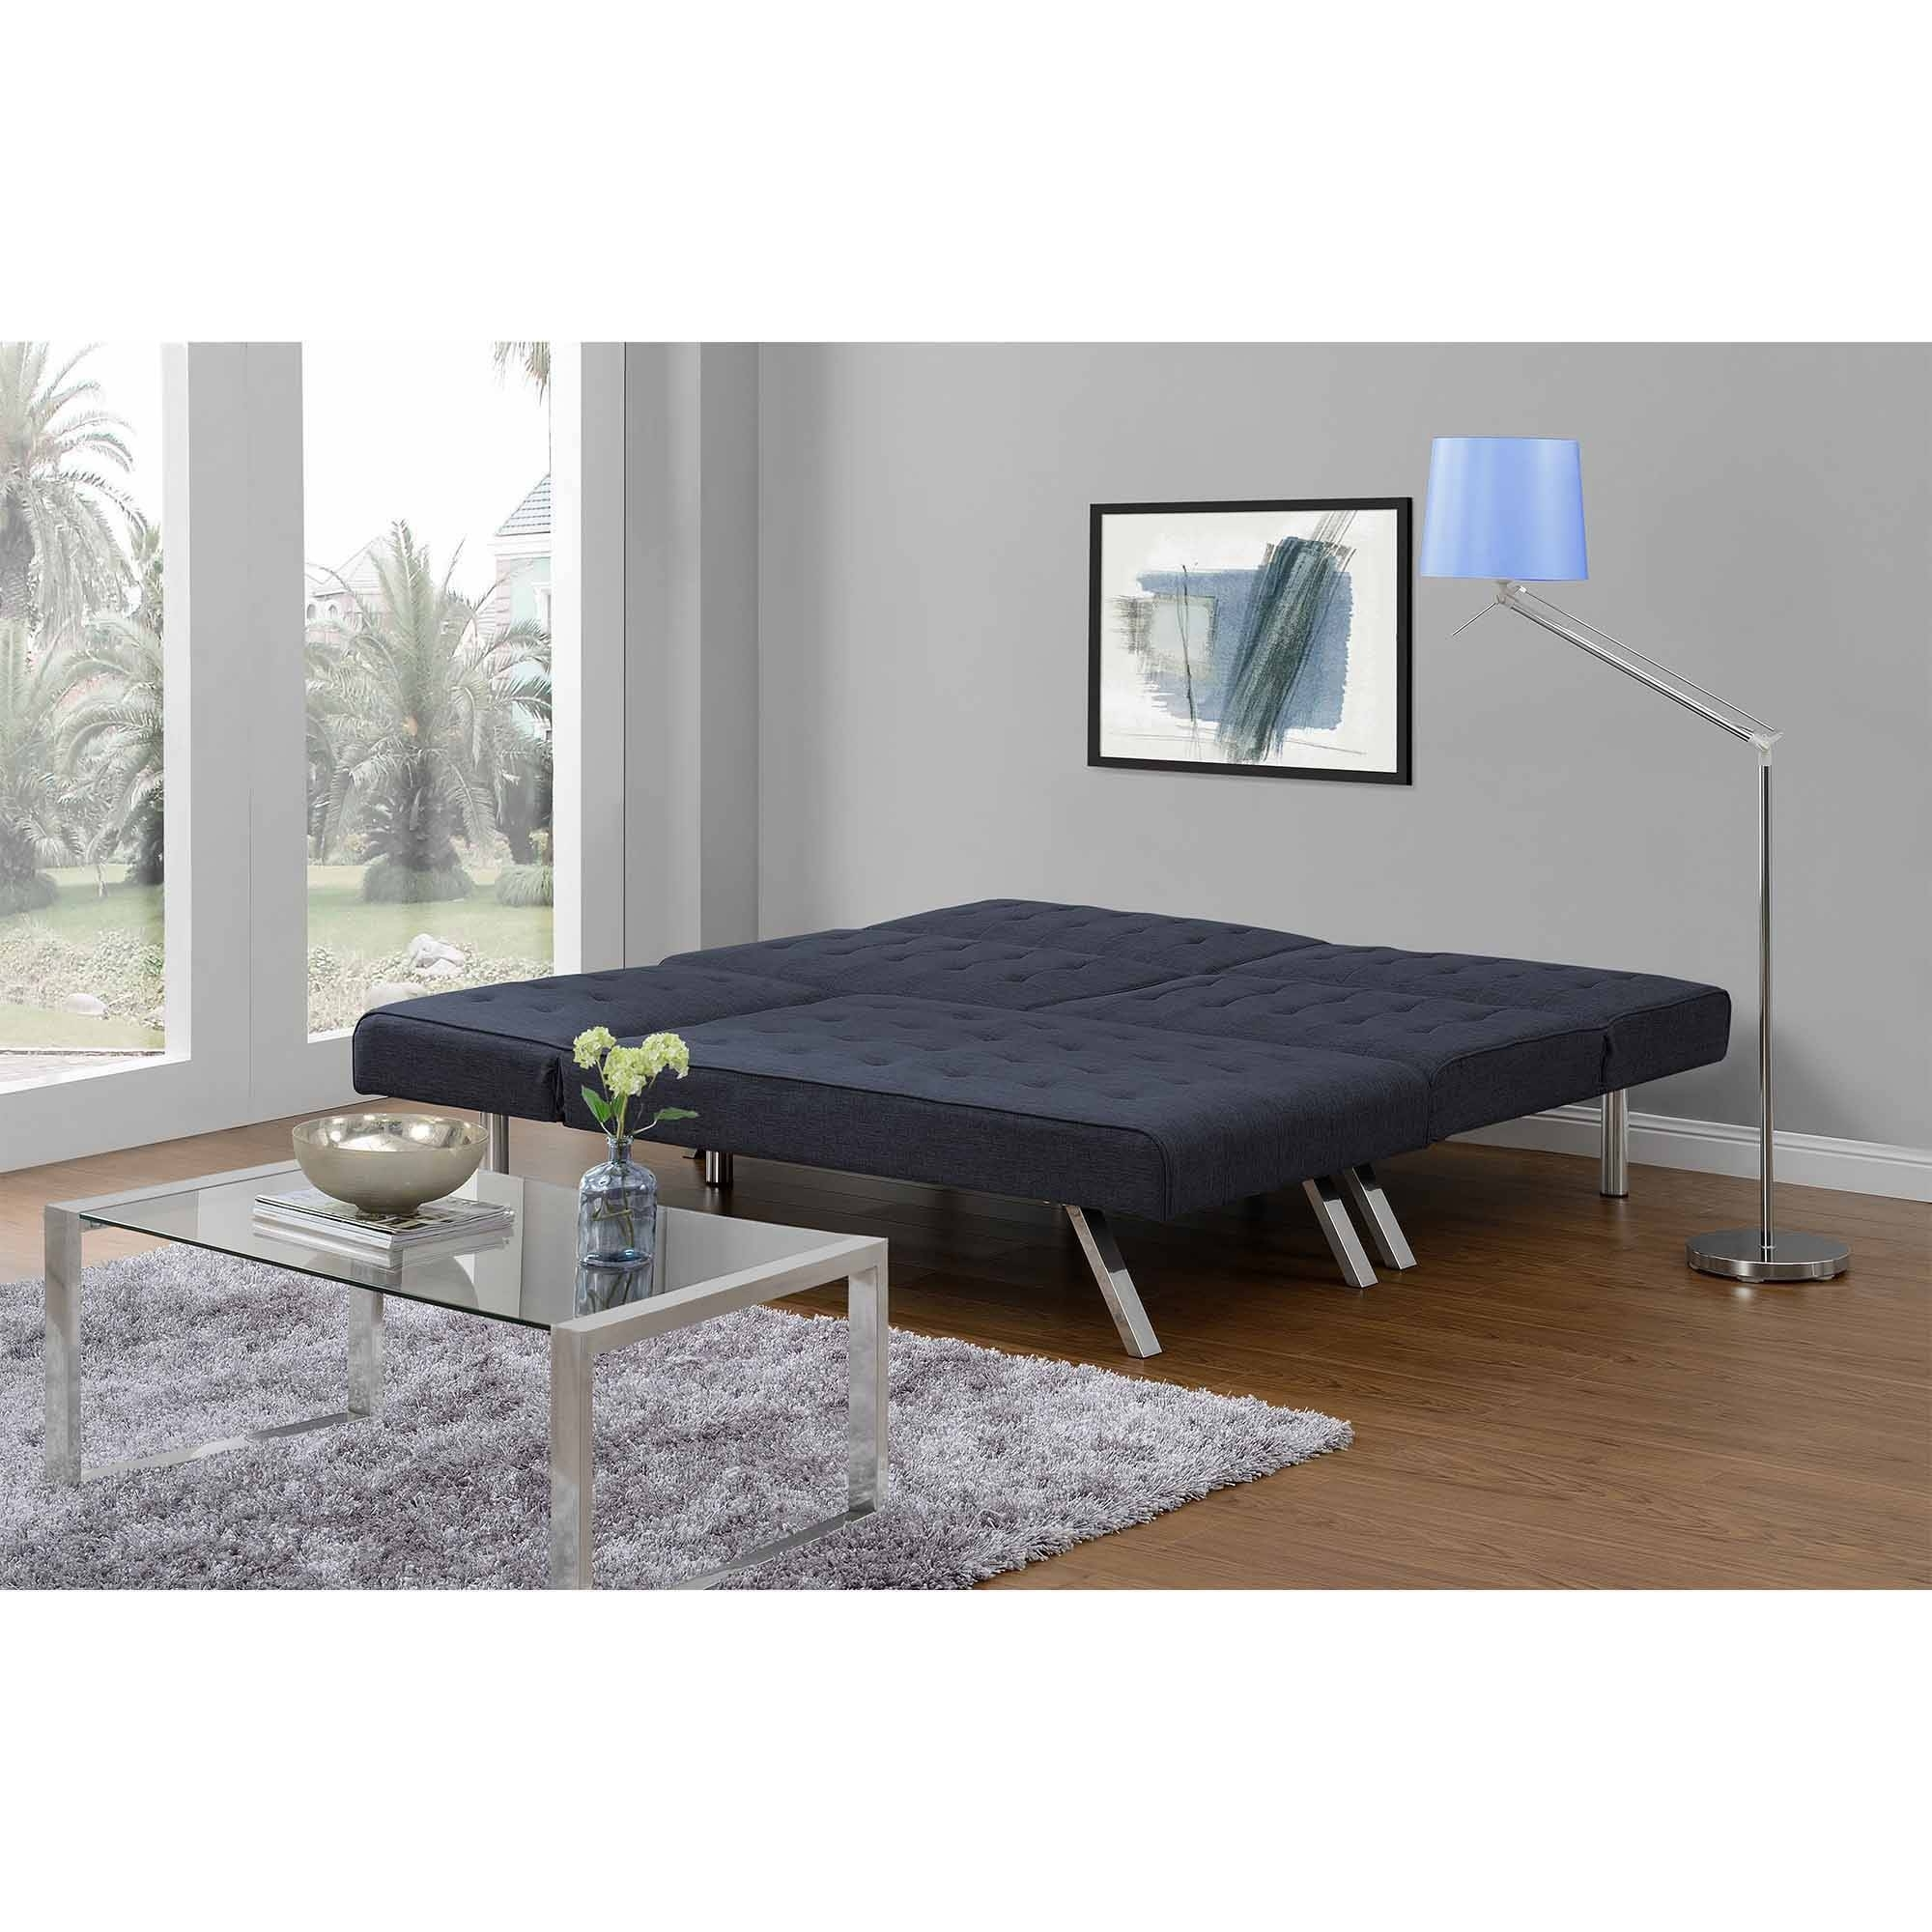 Dhp Emily Futon Chaise Lounger, Multiple Colors – Walmart With Current Futons With Chaise (View 7 of 15)